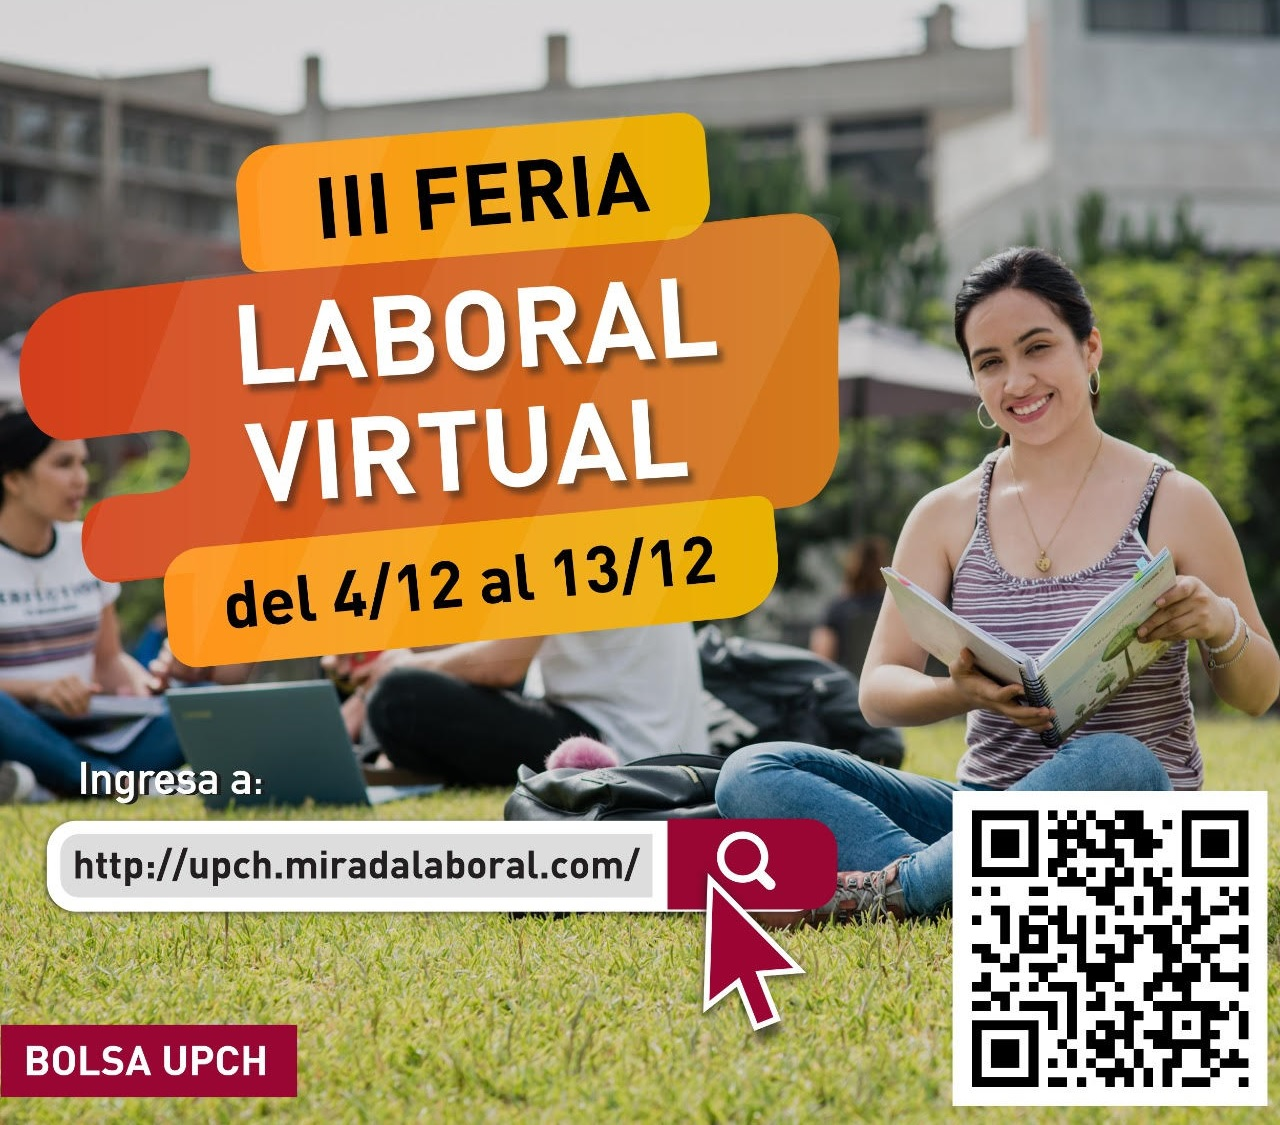 III FERIA LABORAL VIRTUAL CAYETANO